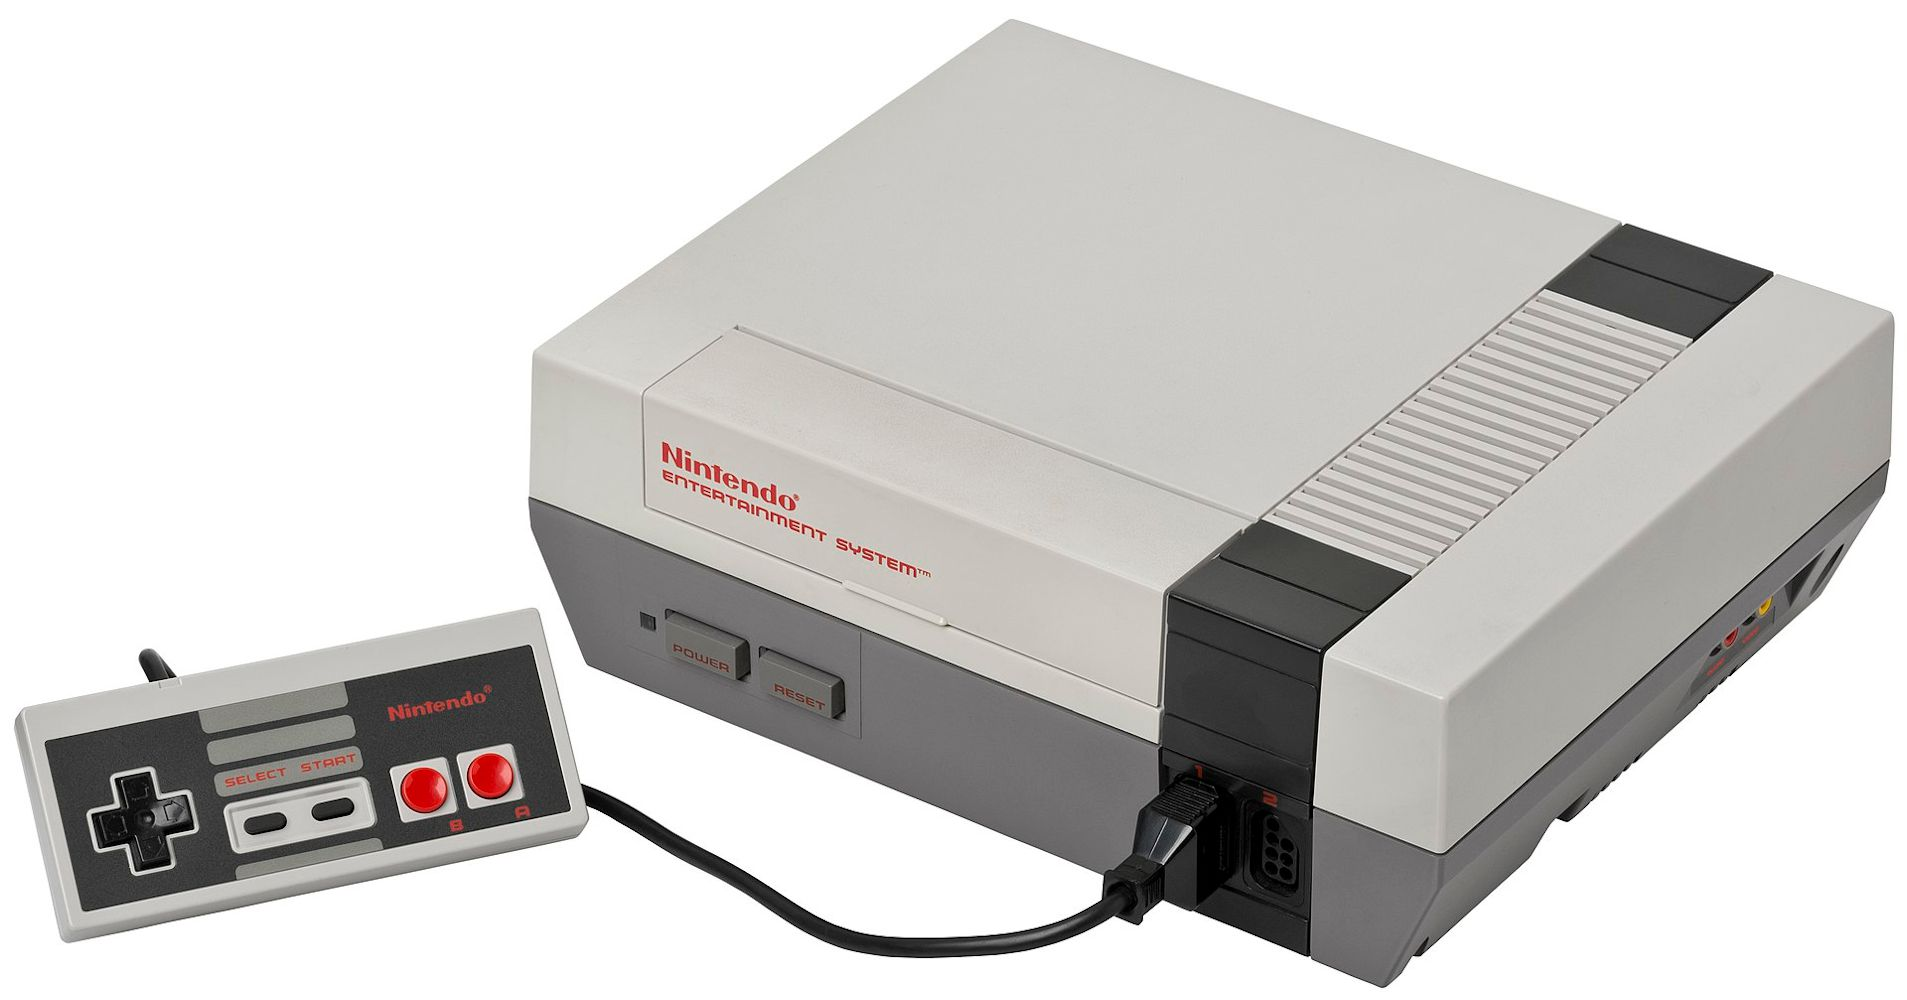 Nintendo Entertainment System home video game console